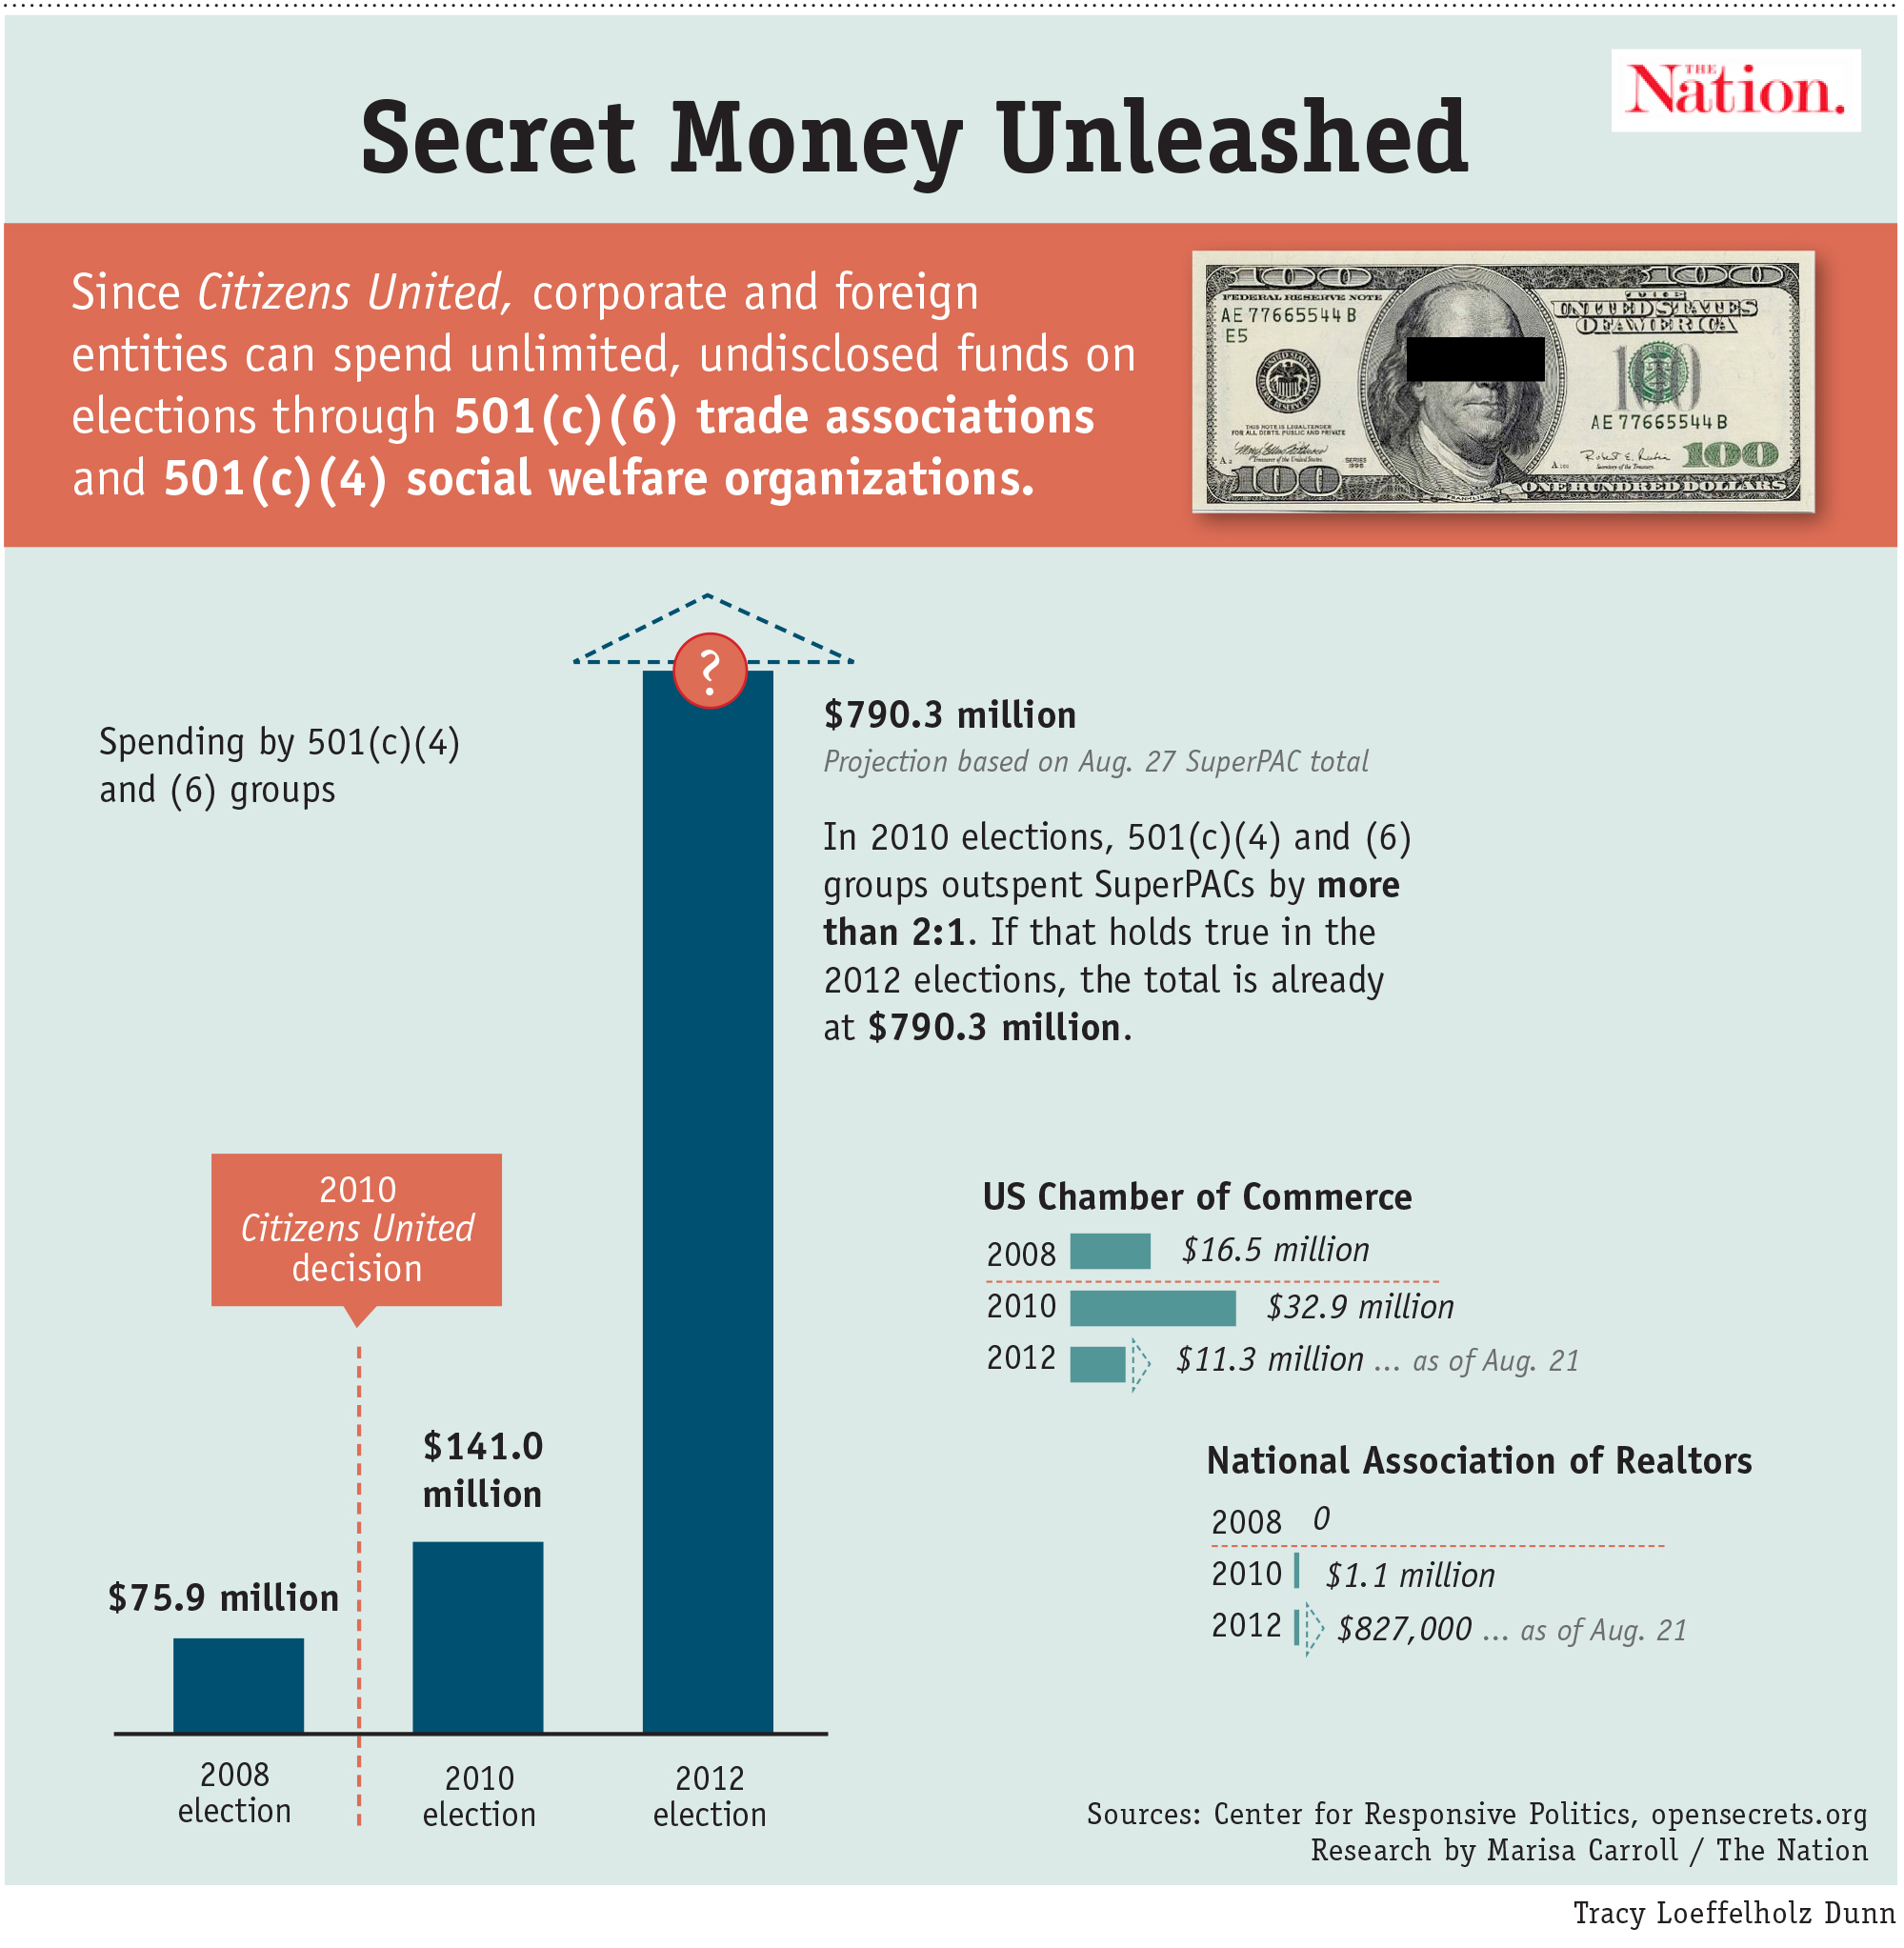 Secret Money unleashed